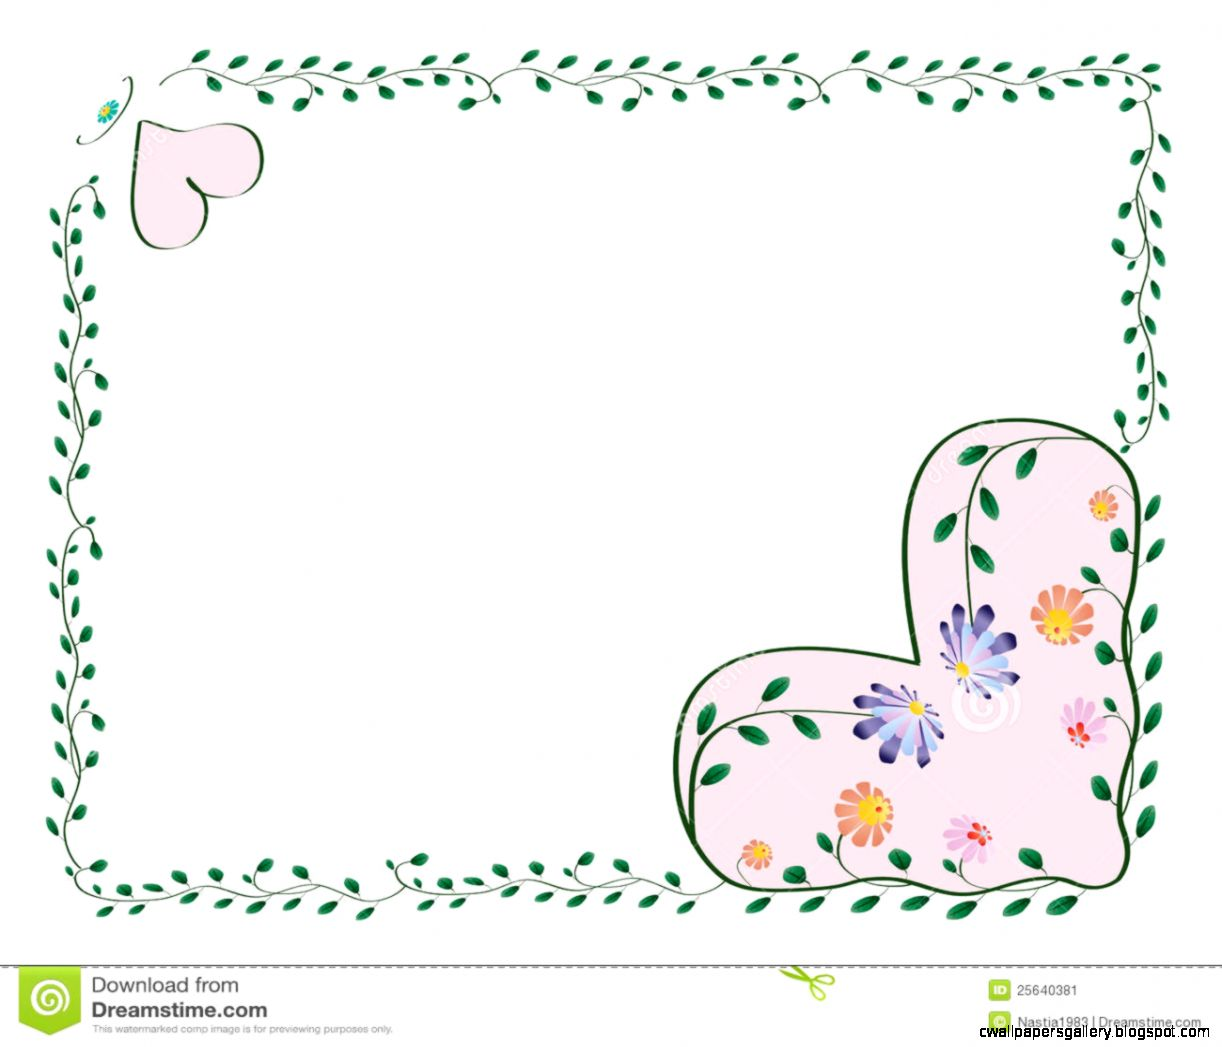 Frame With Hearts And Color Flowers Stock Image   Image 25640381